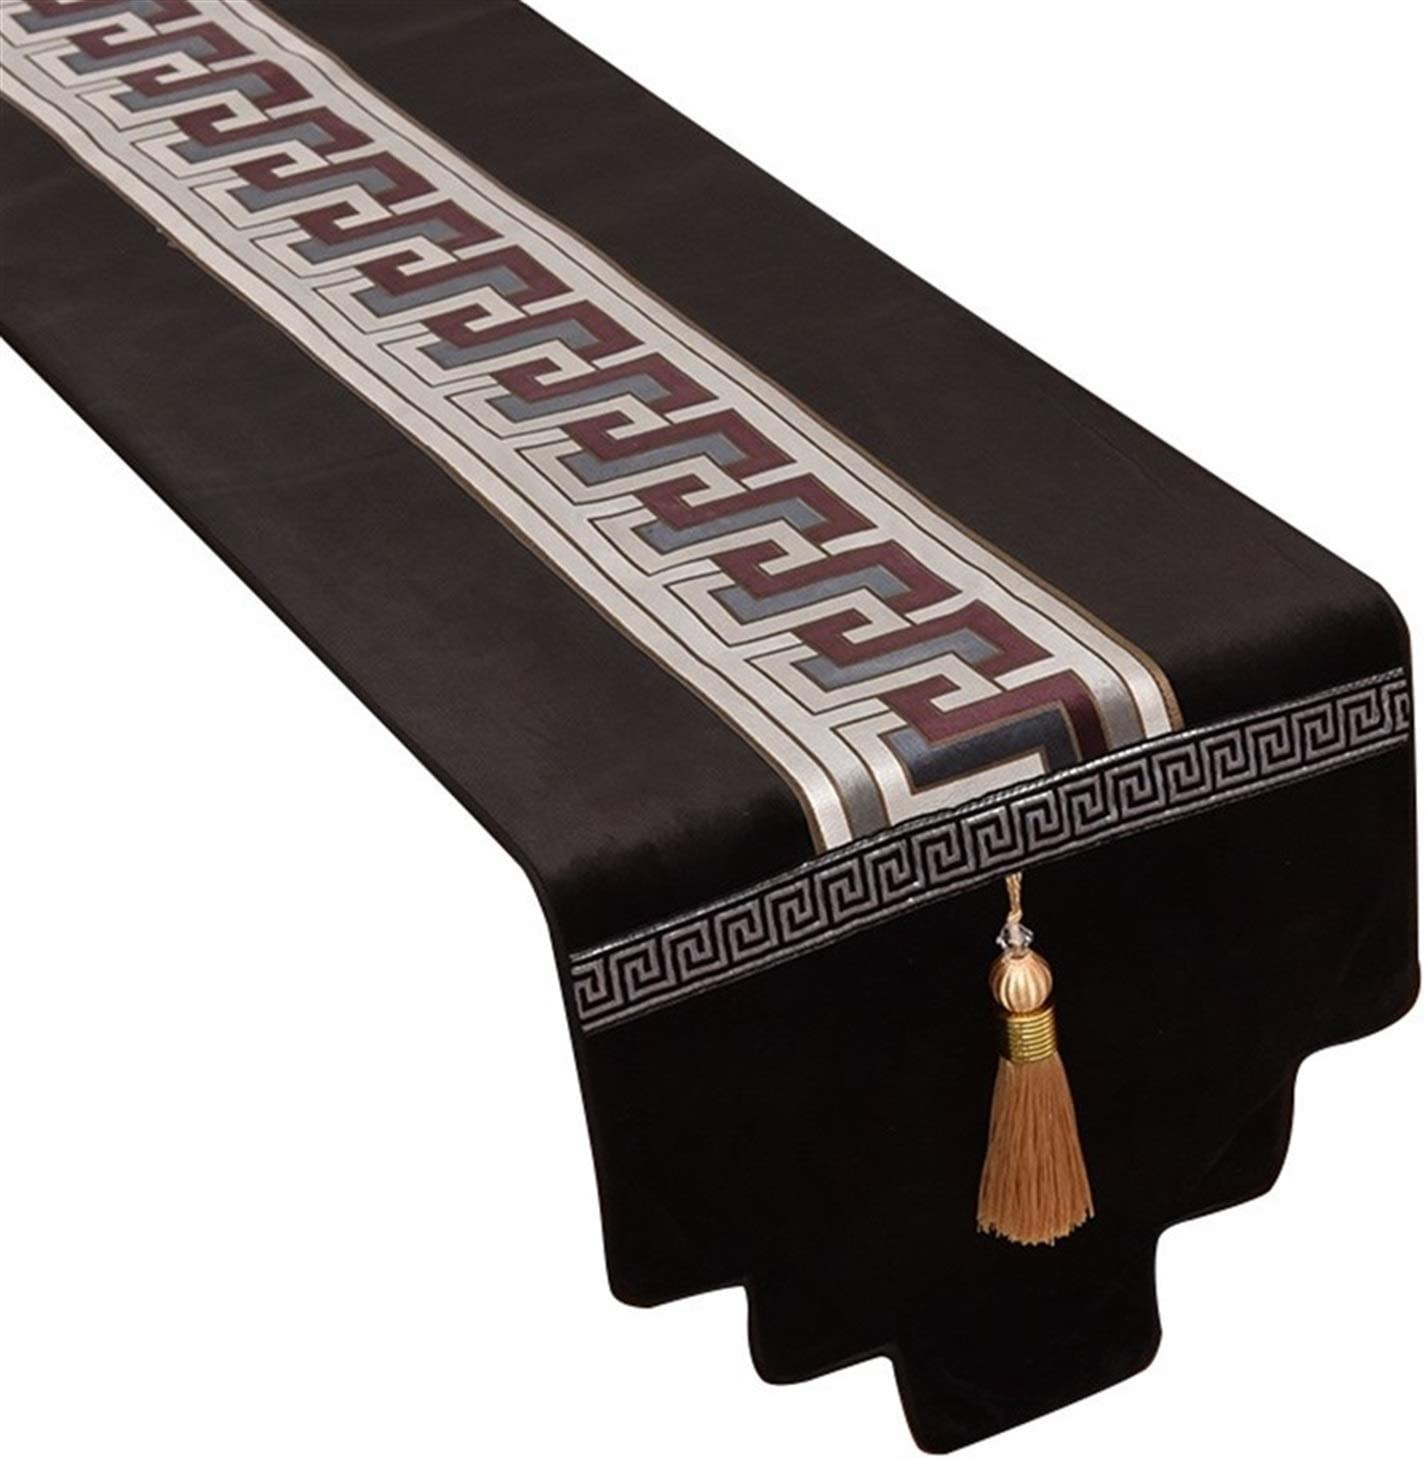 GDXFSM Table Runners Luxury Classy Embroidery Style Tas Challenge the Indianapolis Mall lowest price European